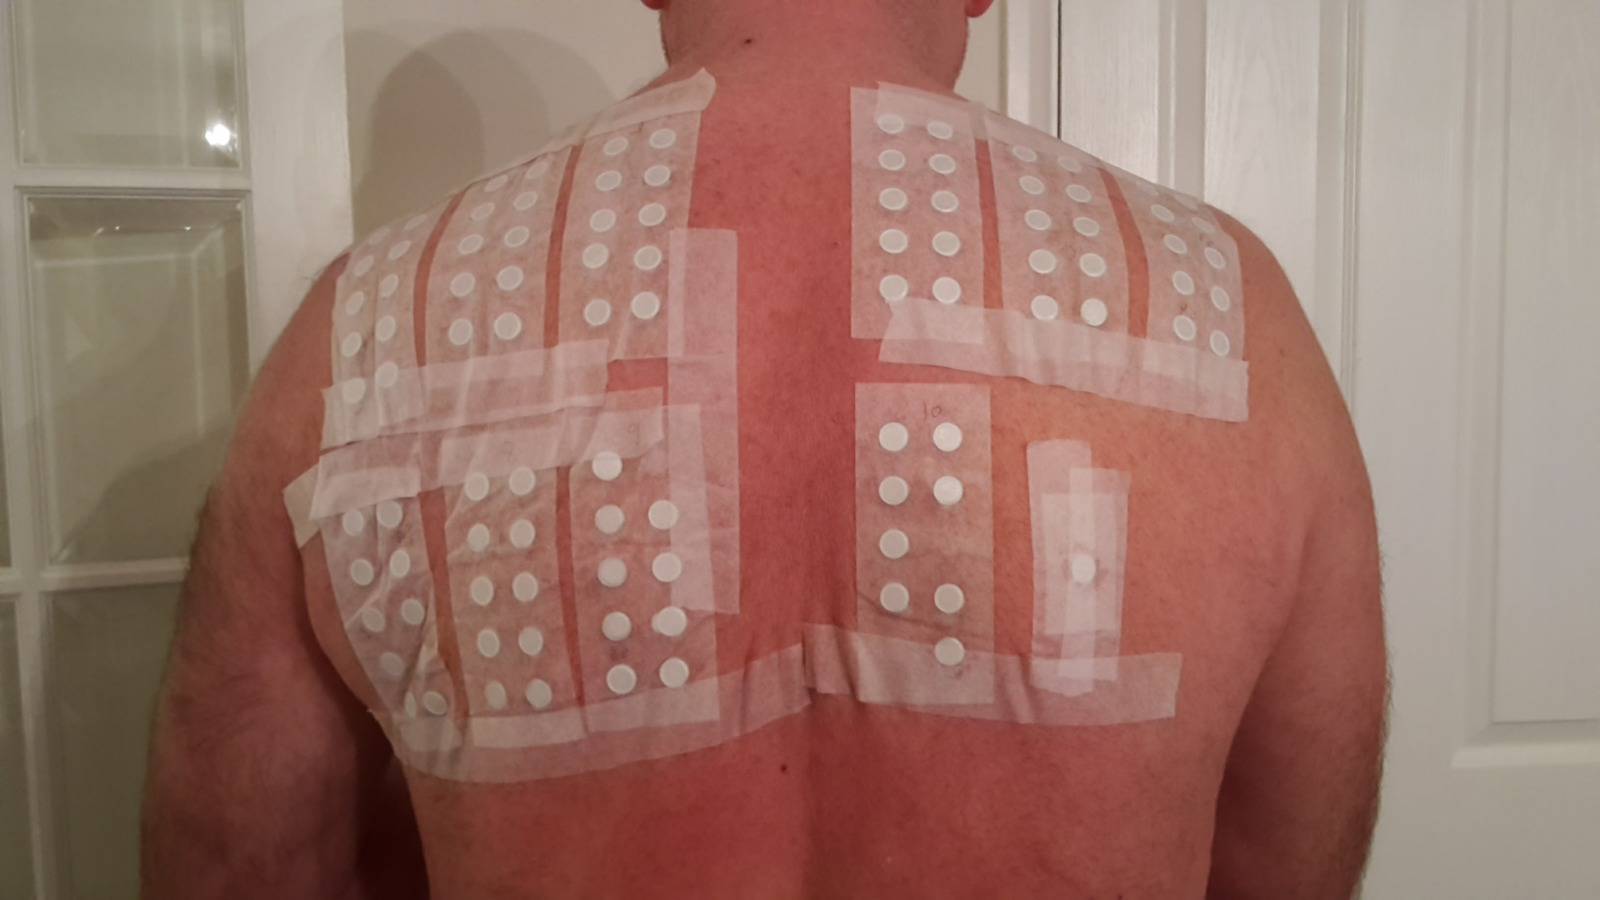 Patch testing on Garry's back